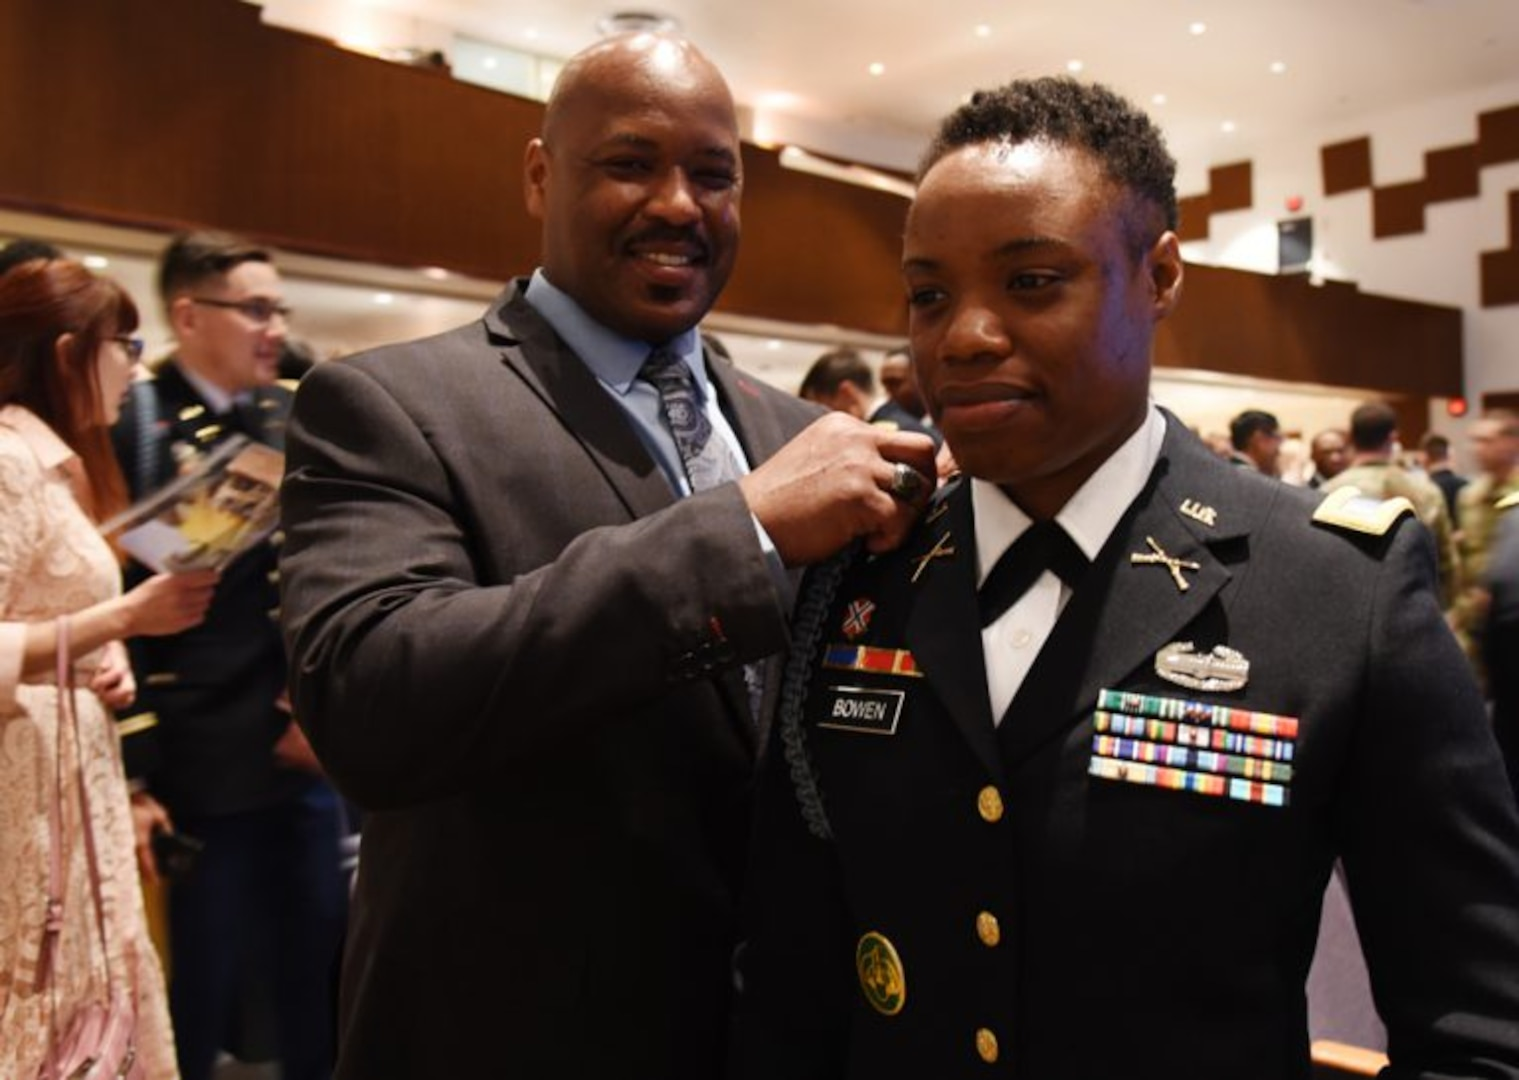 Virginia welcomes first female infantry officer